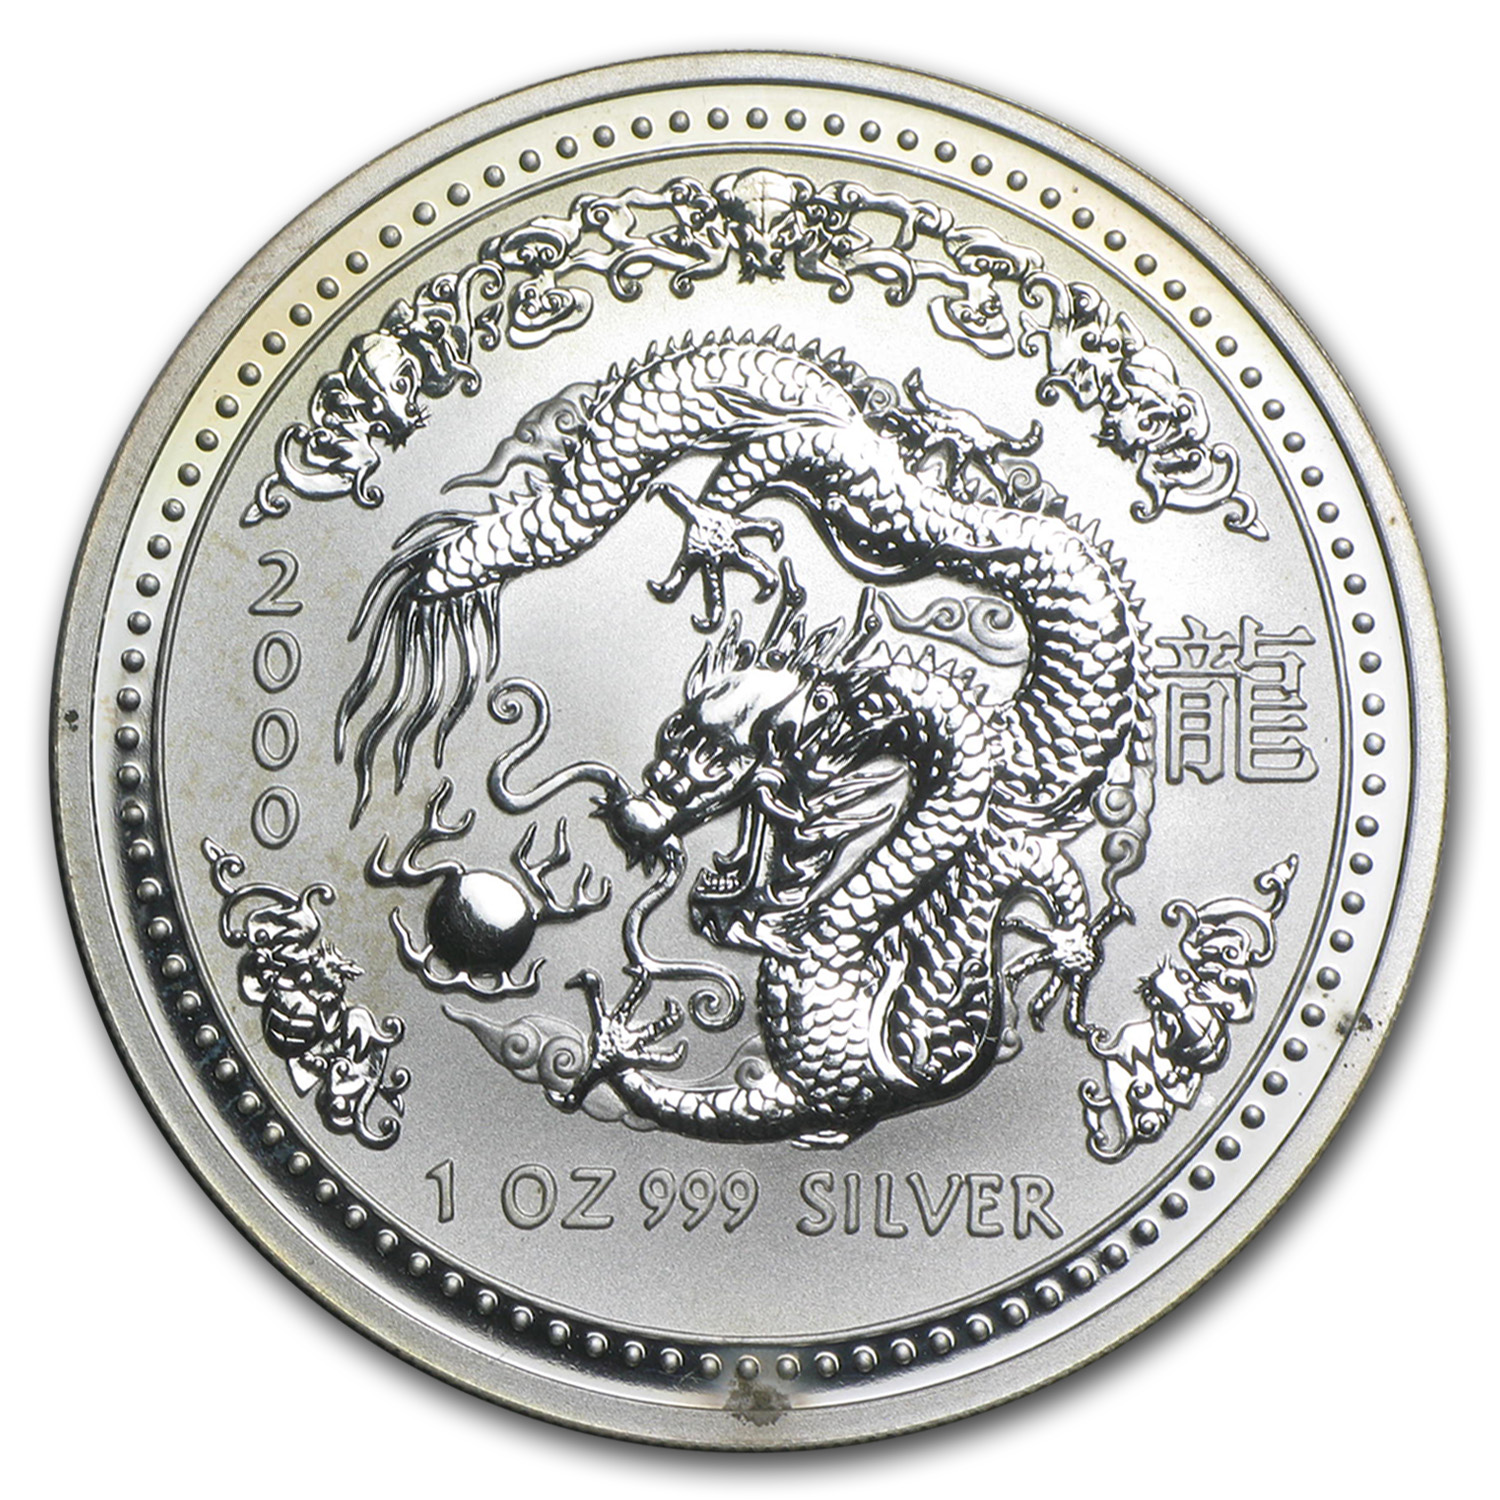 2000 1 oz Silver Lunar Year of the Dragon (Series I)(Abrasions)